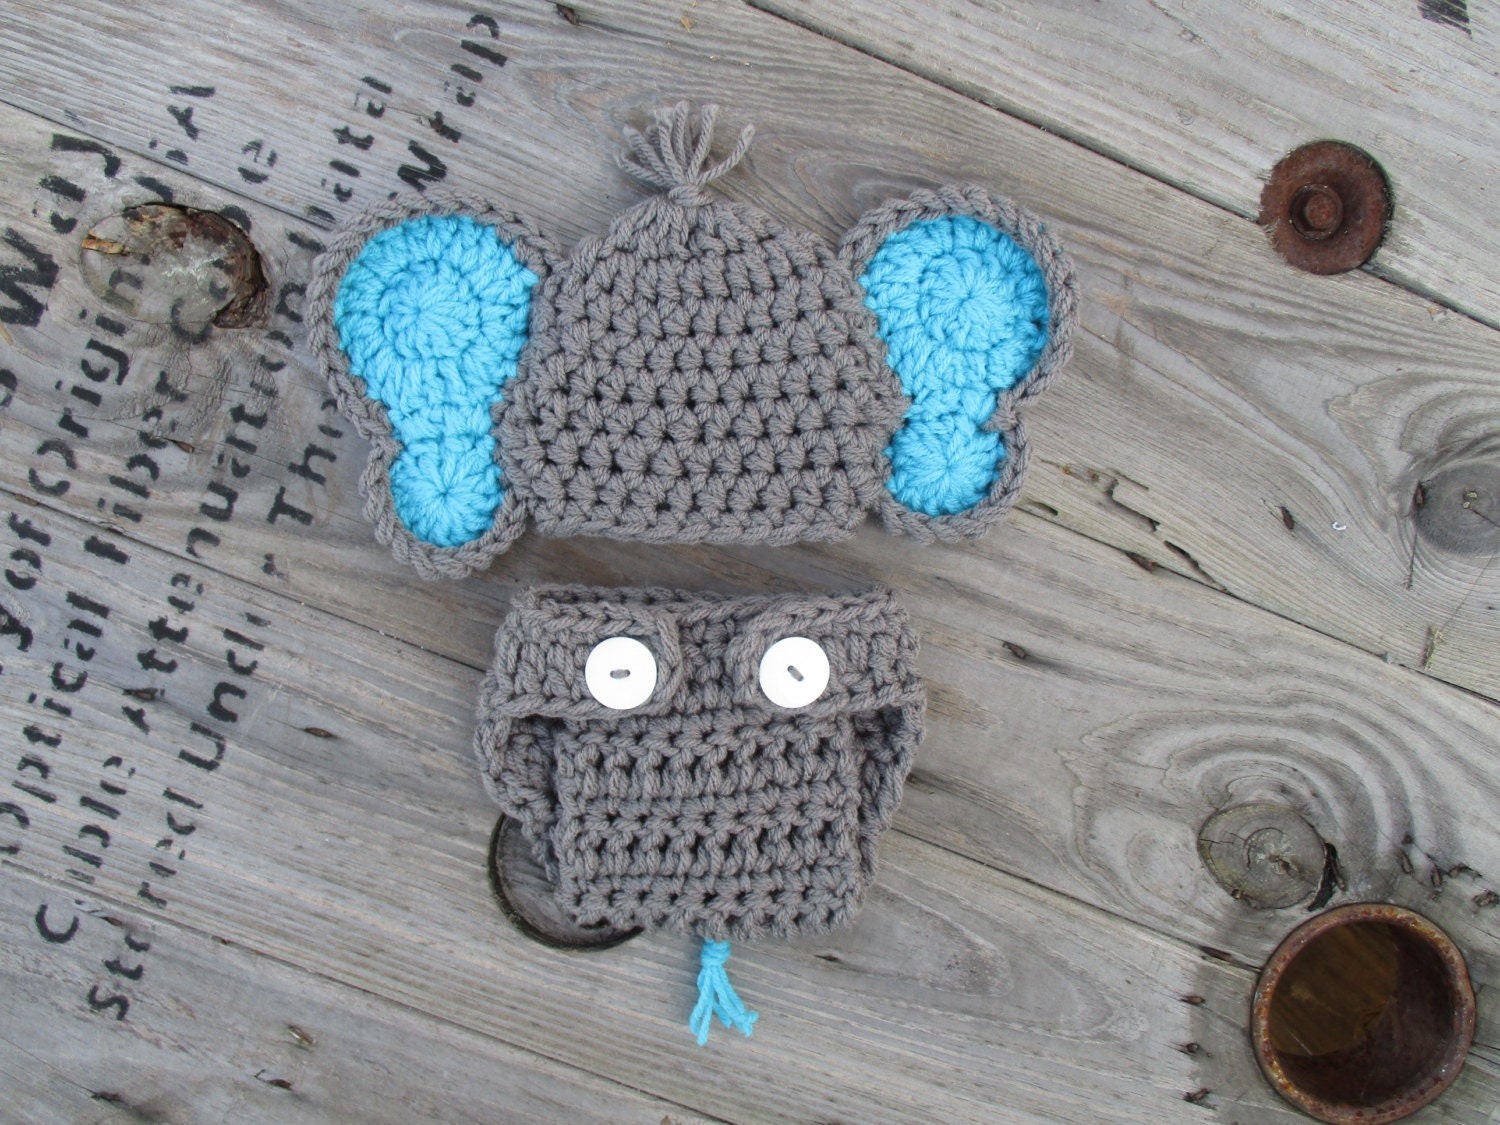 Crochet Baby Elephant Crochet Baby Outfit Knit Elephant Hat